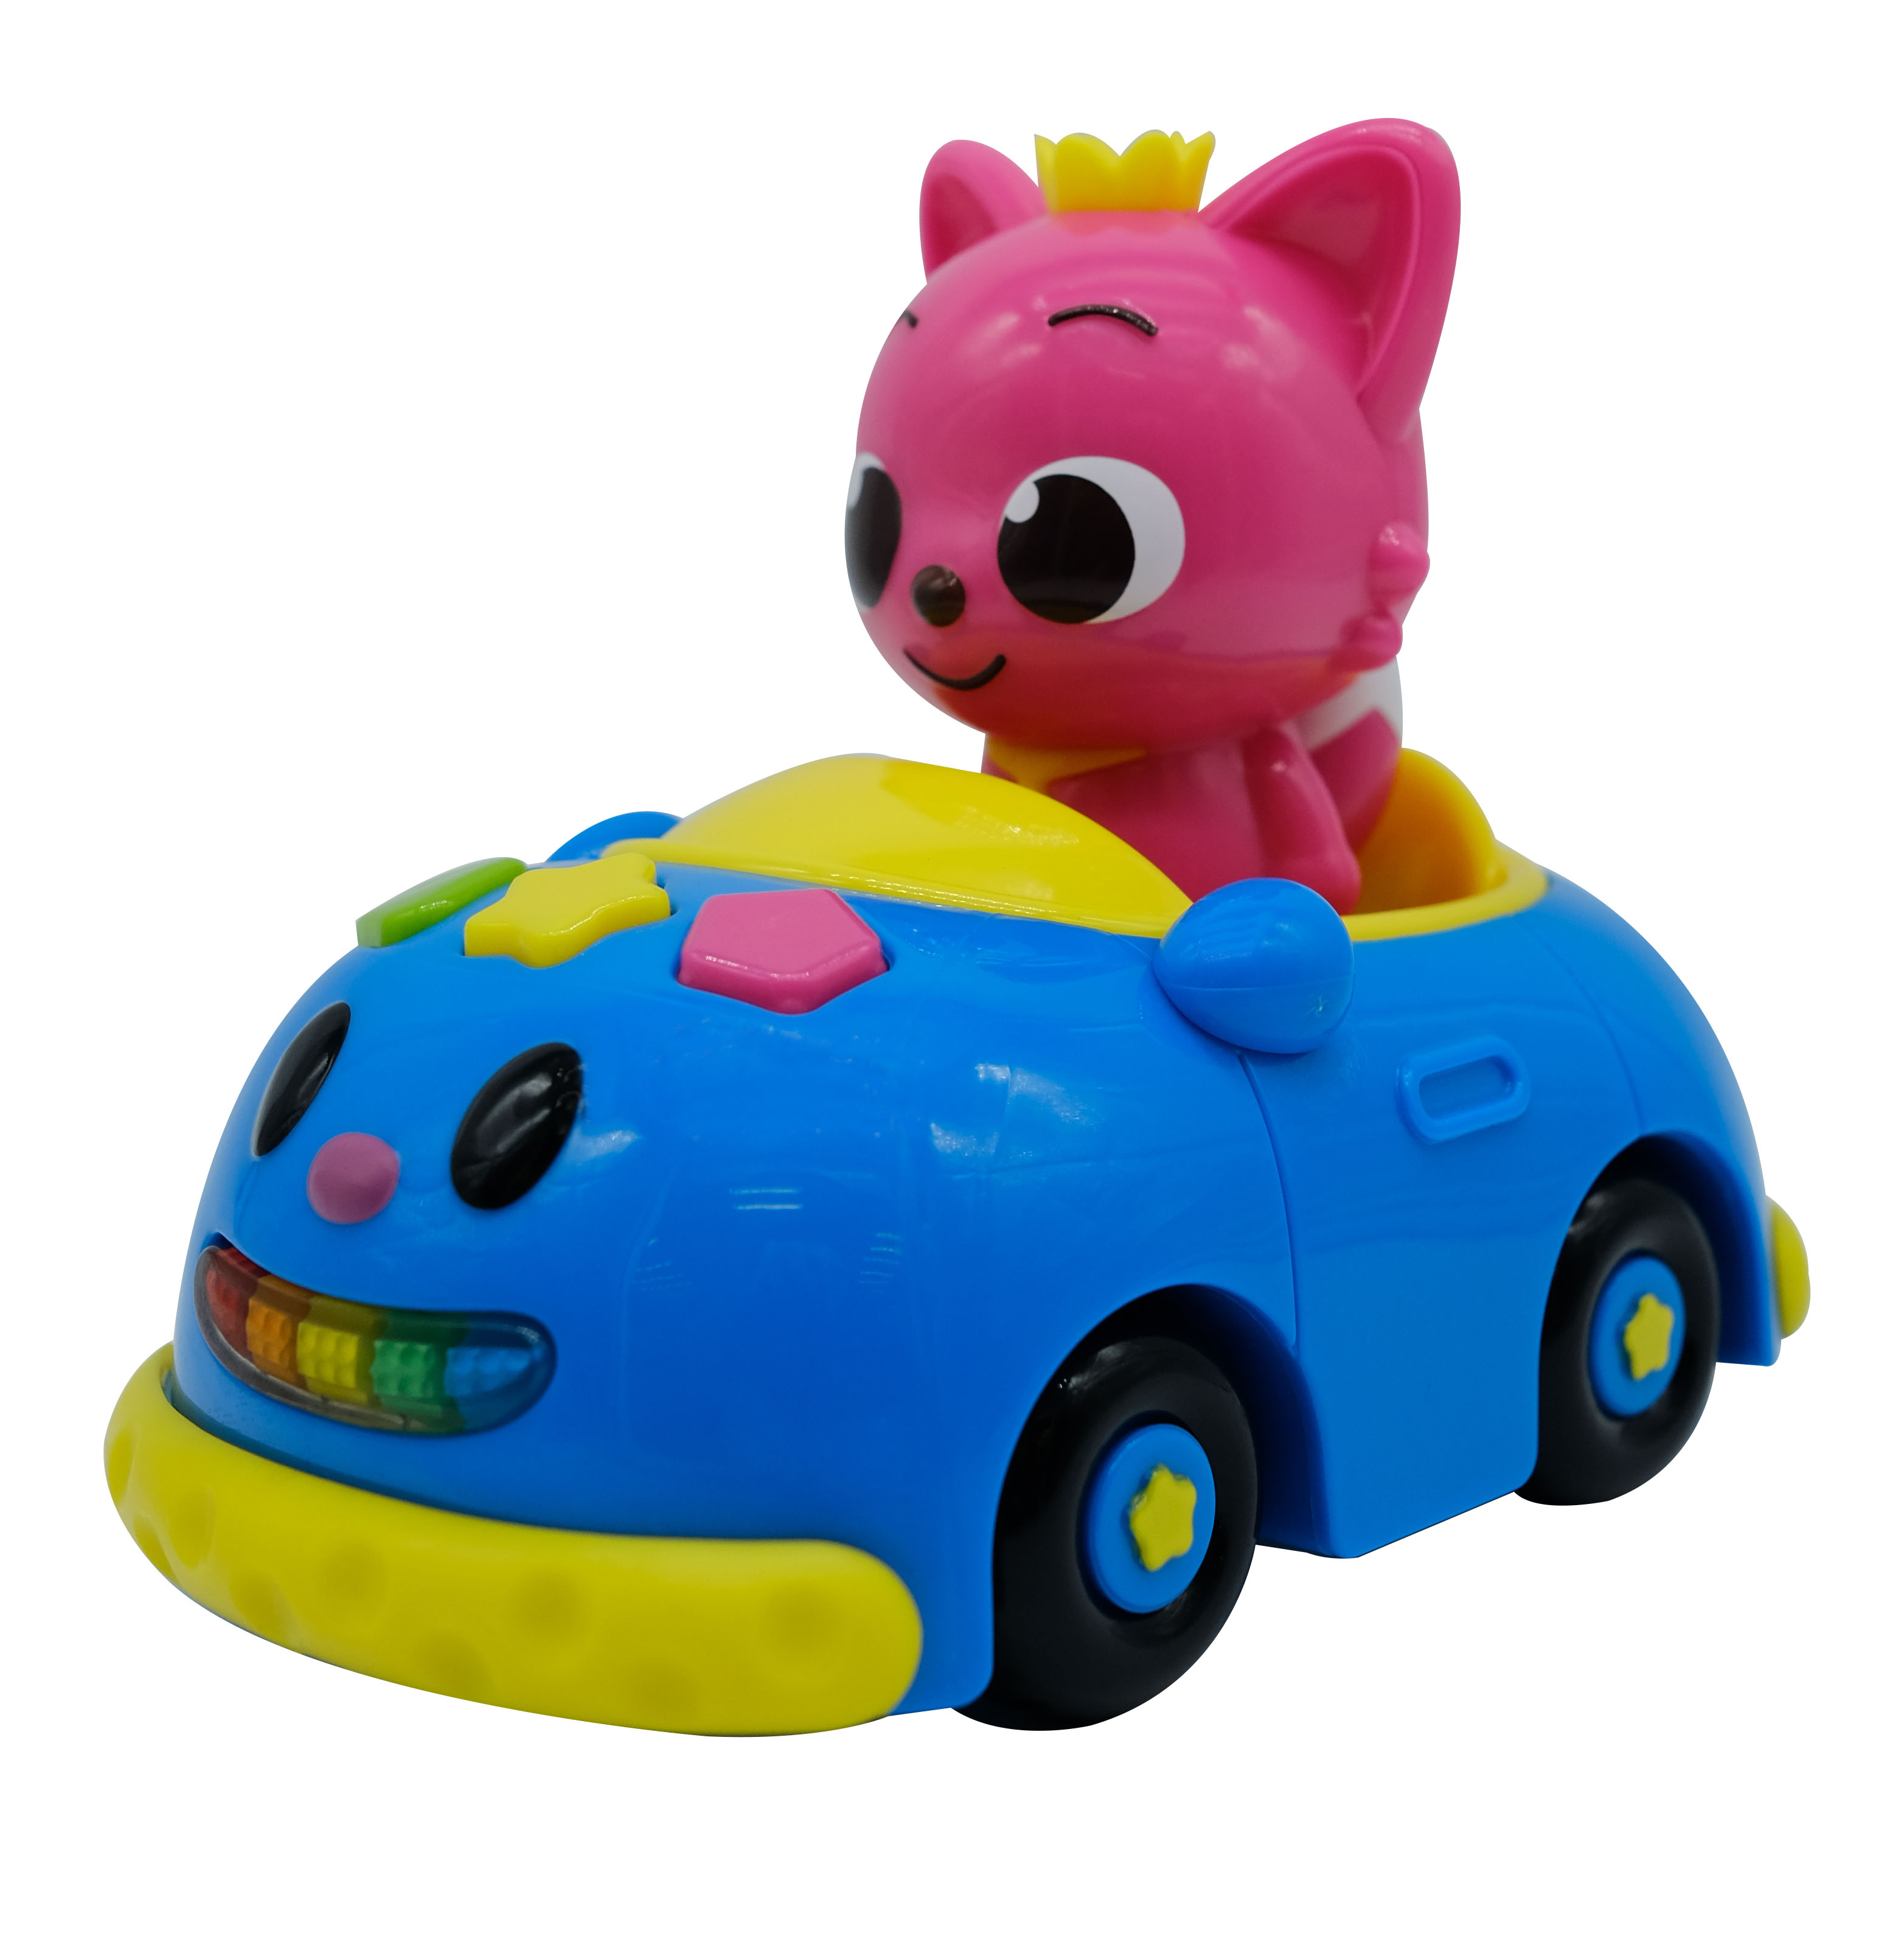 SS120151600000 Baby Shark Car And Pinkfong Figure (5)